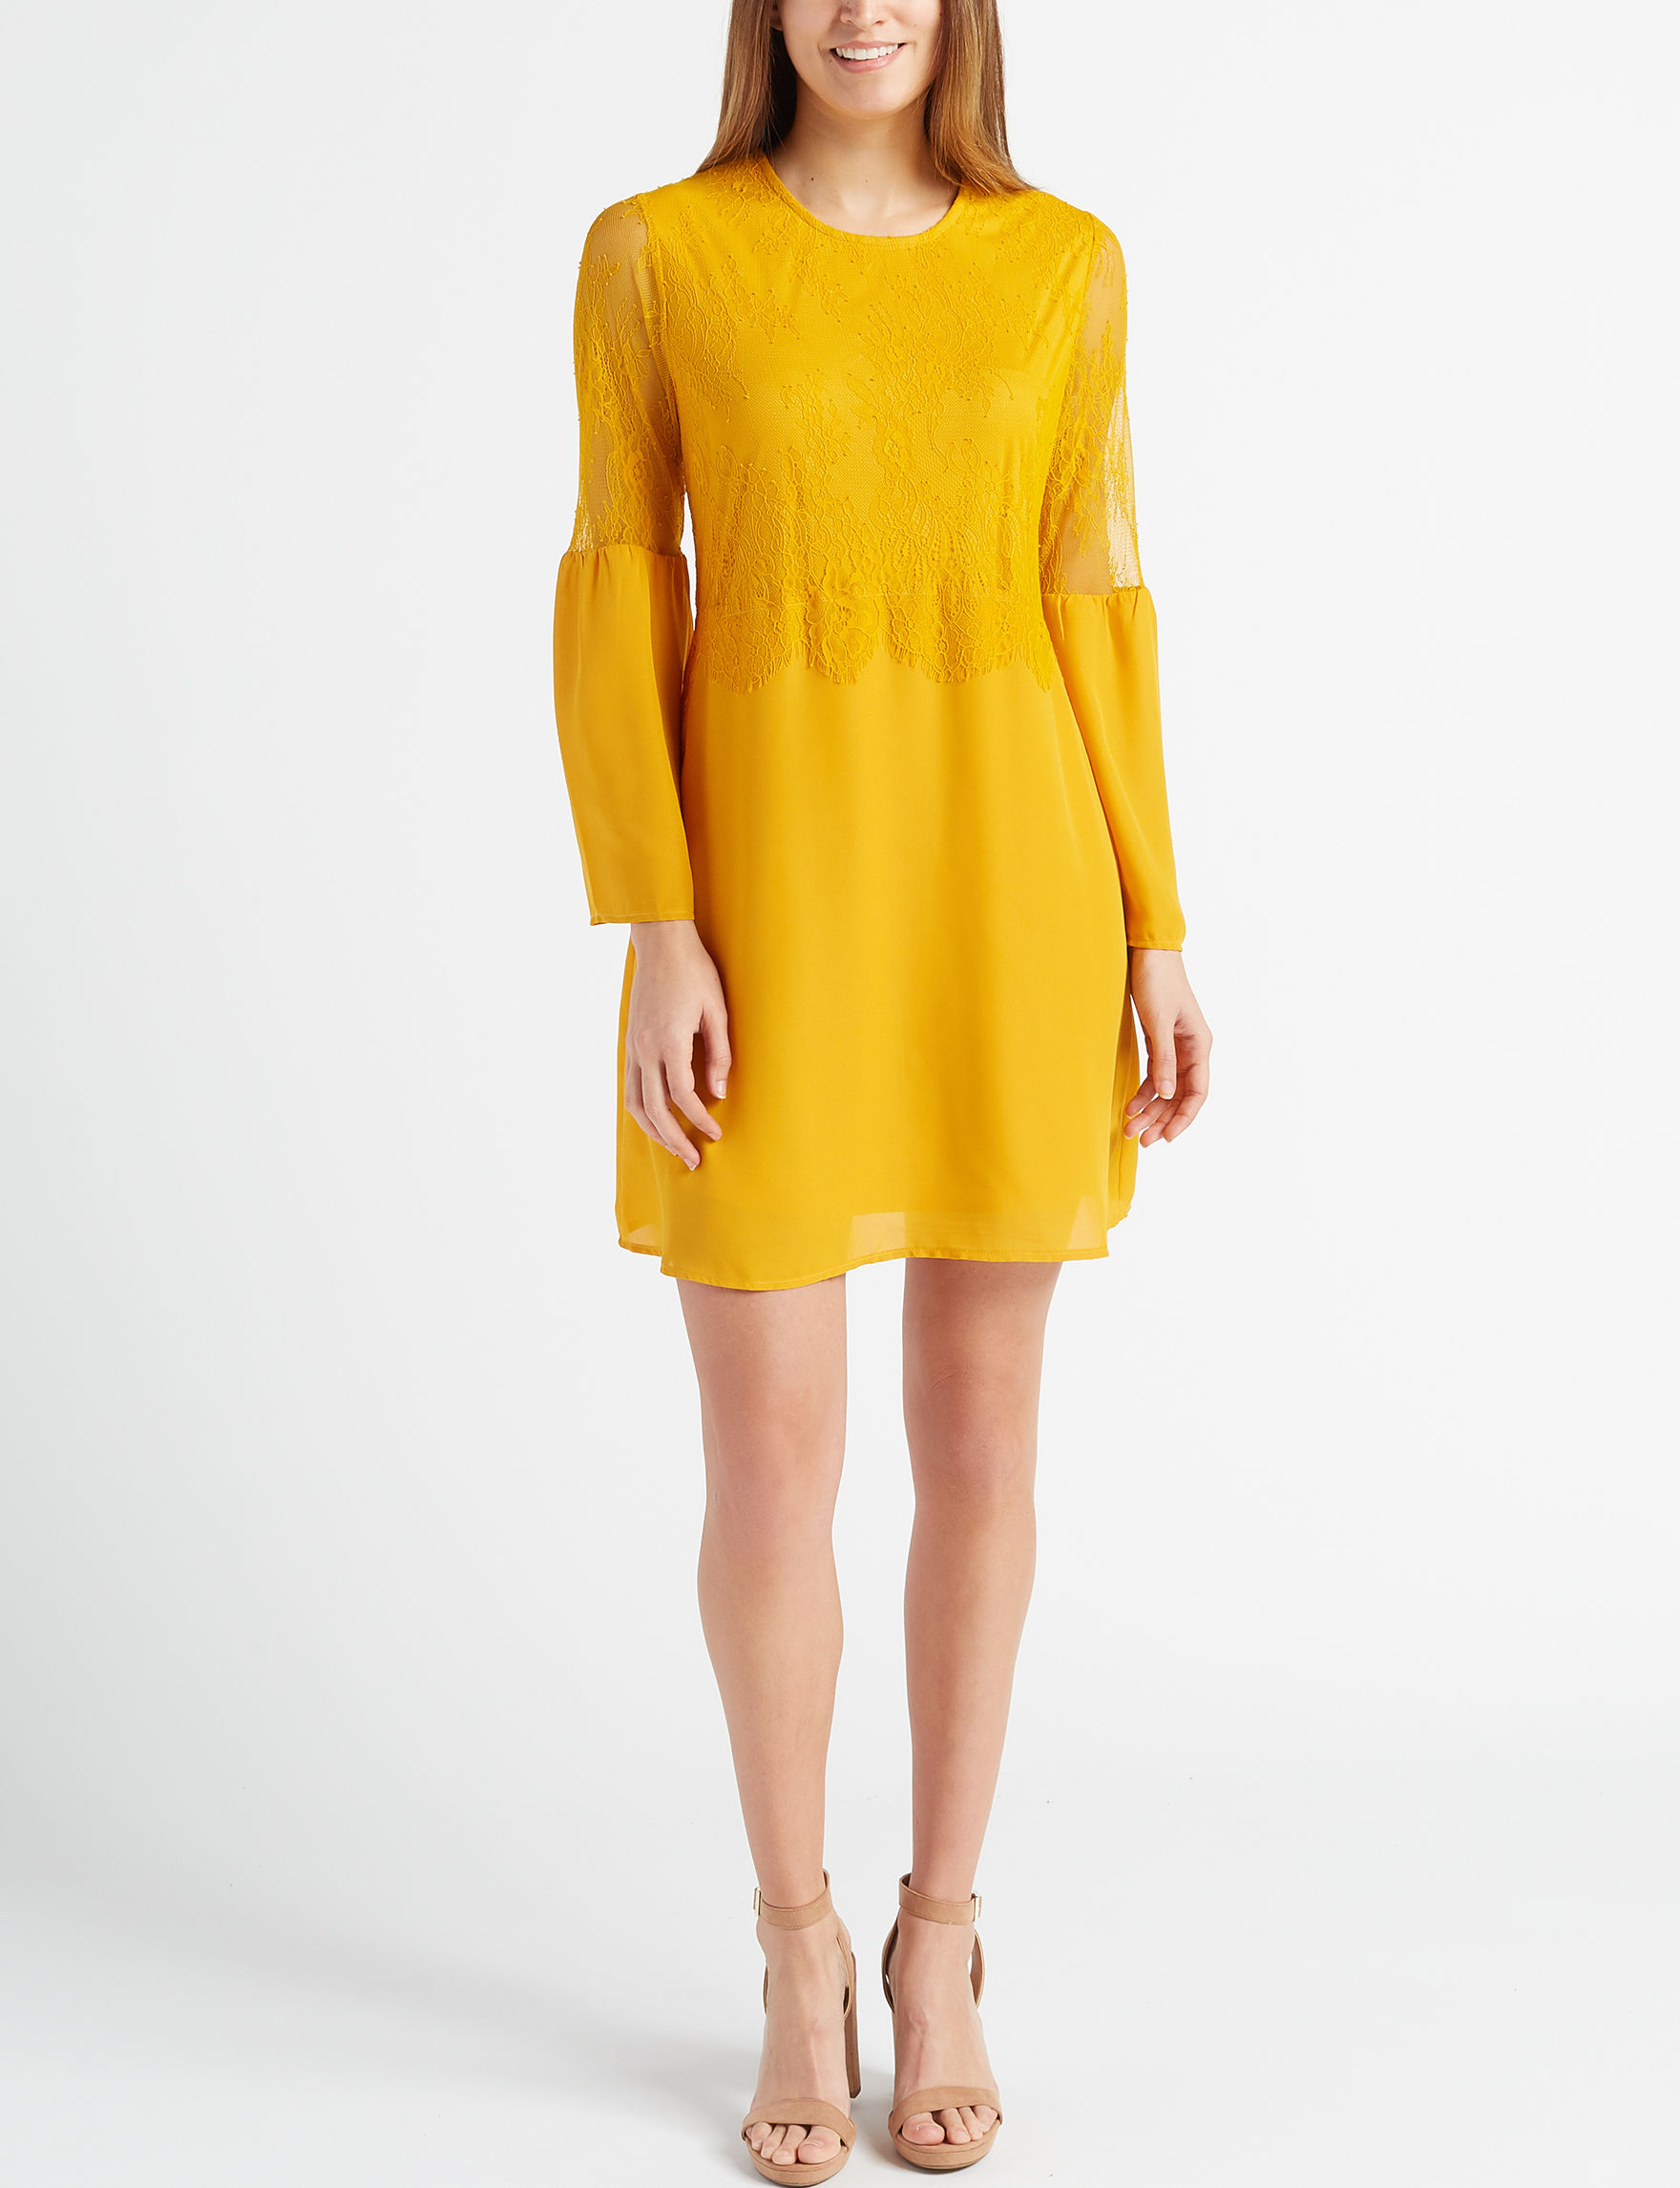 Liberty Love Mustard Cocktail & Party Everyday & Casual Shift Dresses